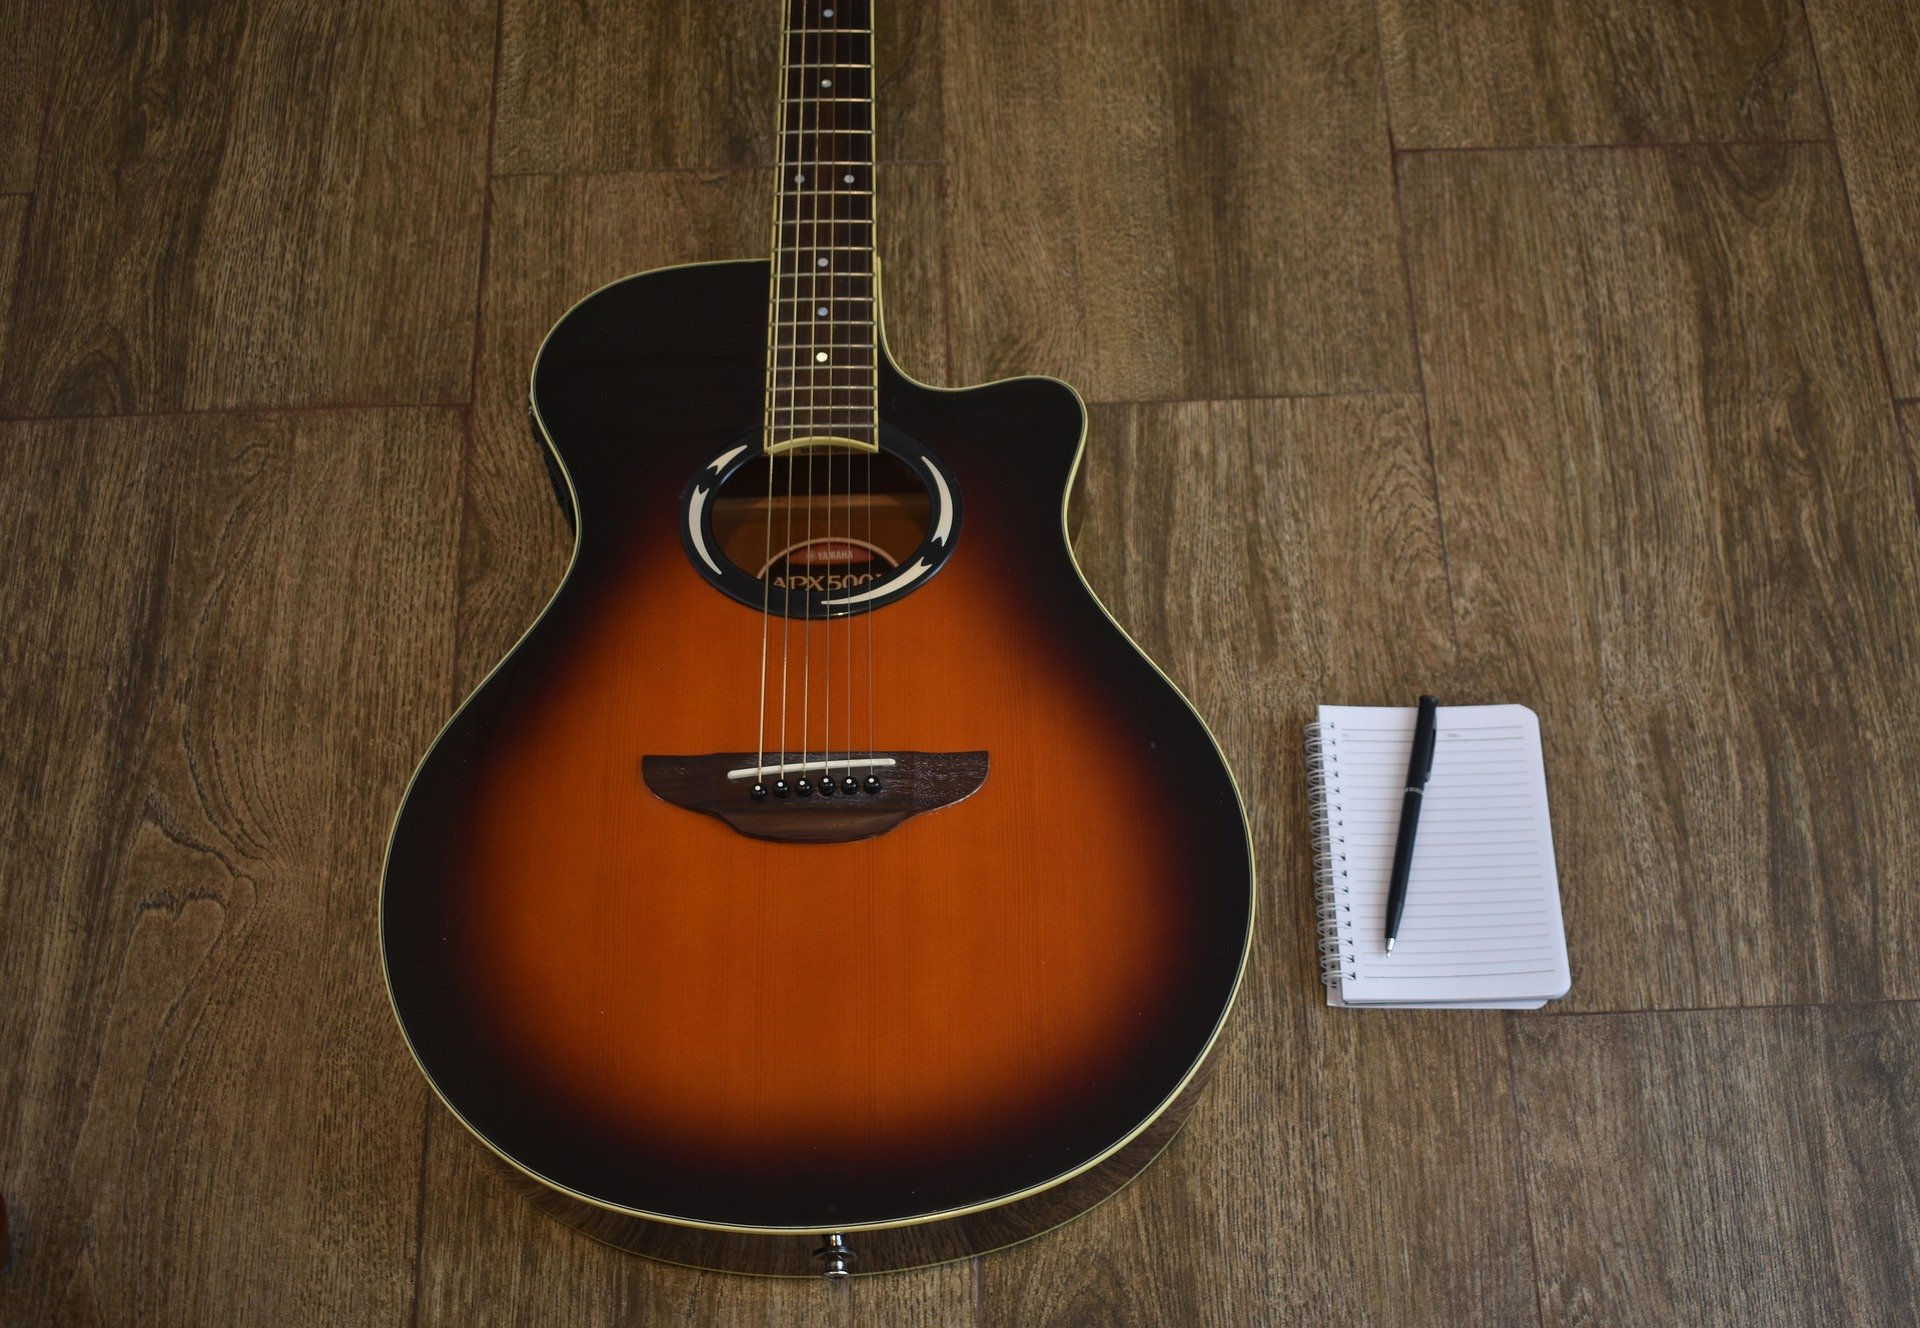 Blank notepad lying next to guitar